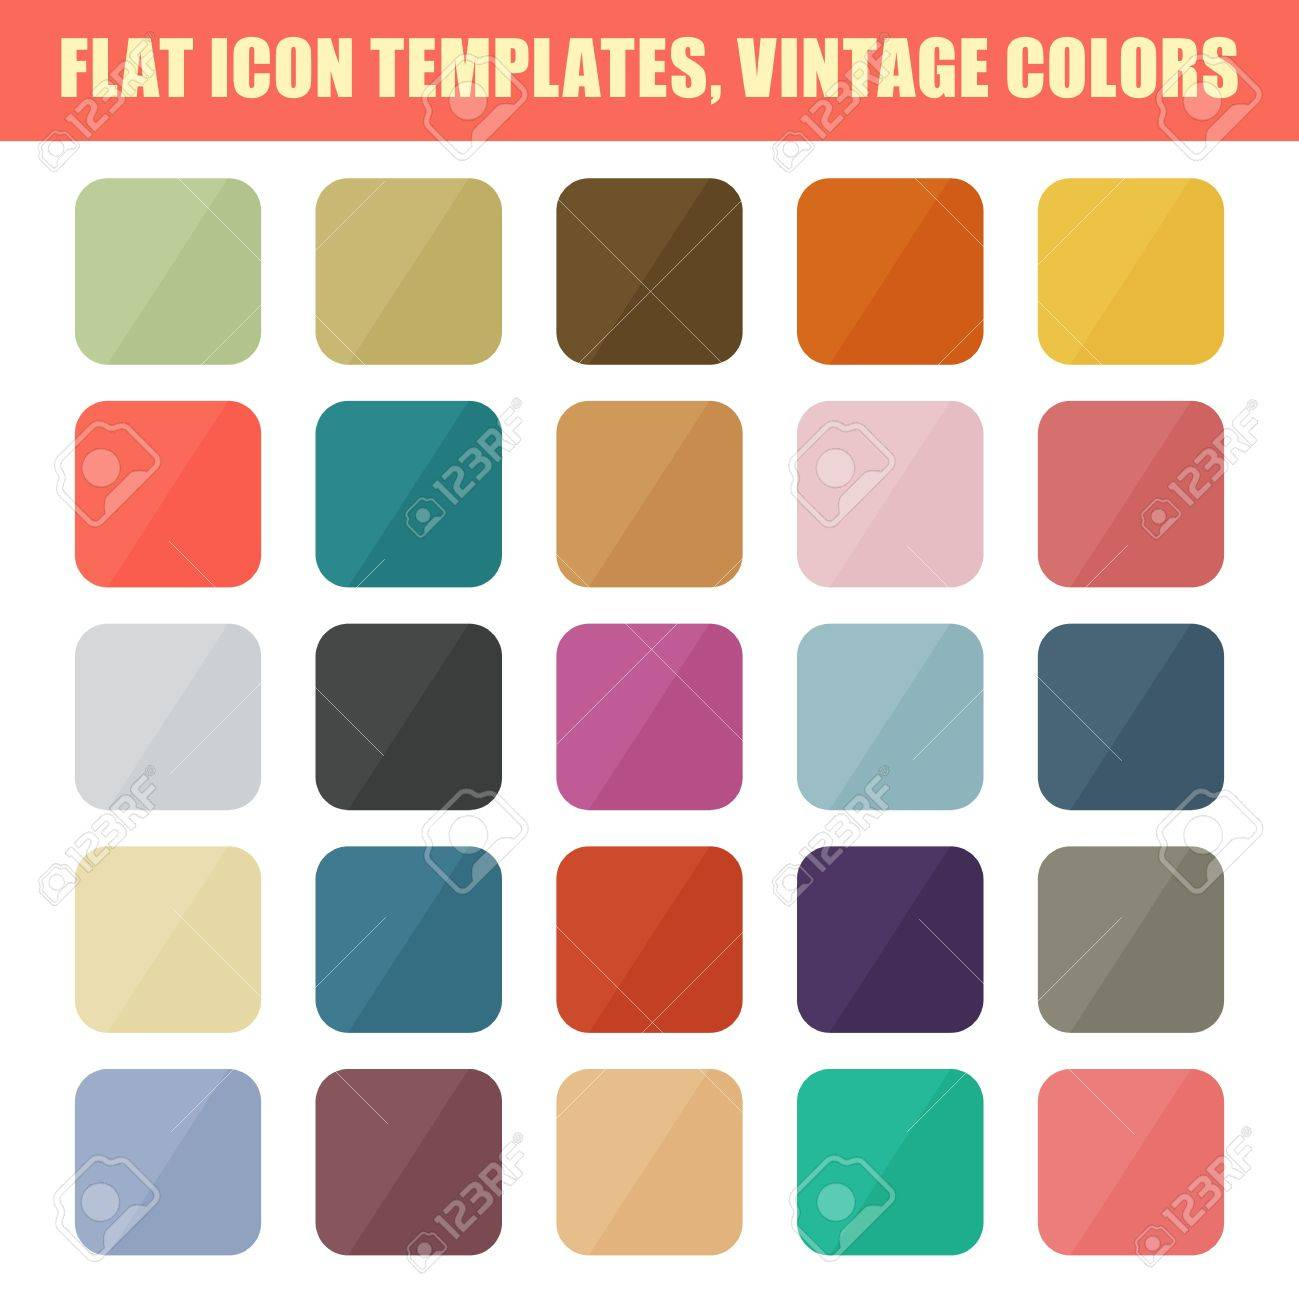 set of flat app icon templates backgrounds vintage palette